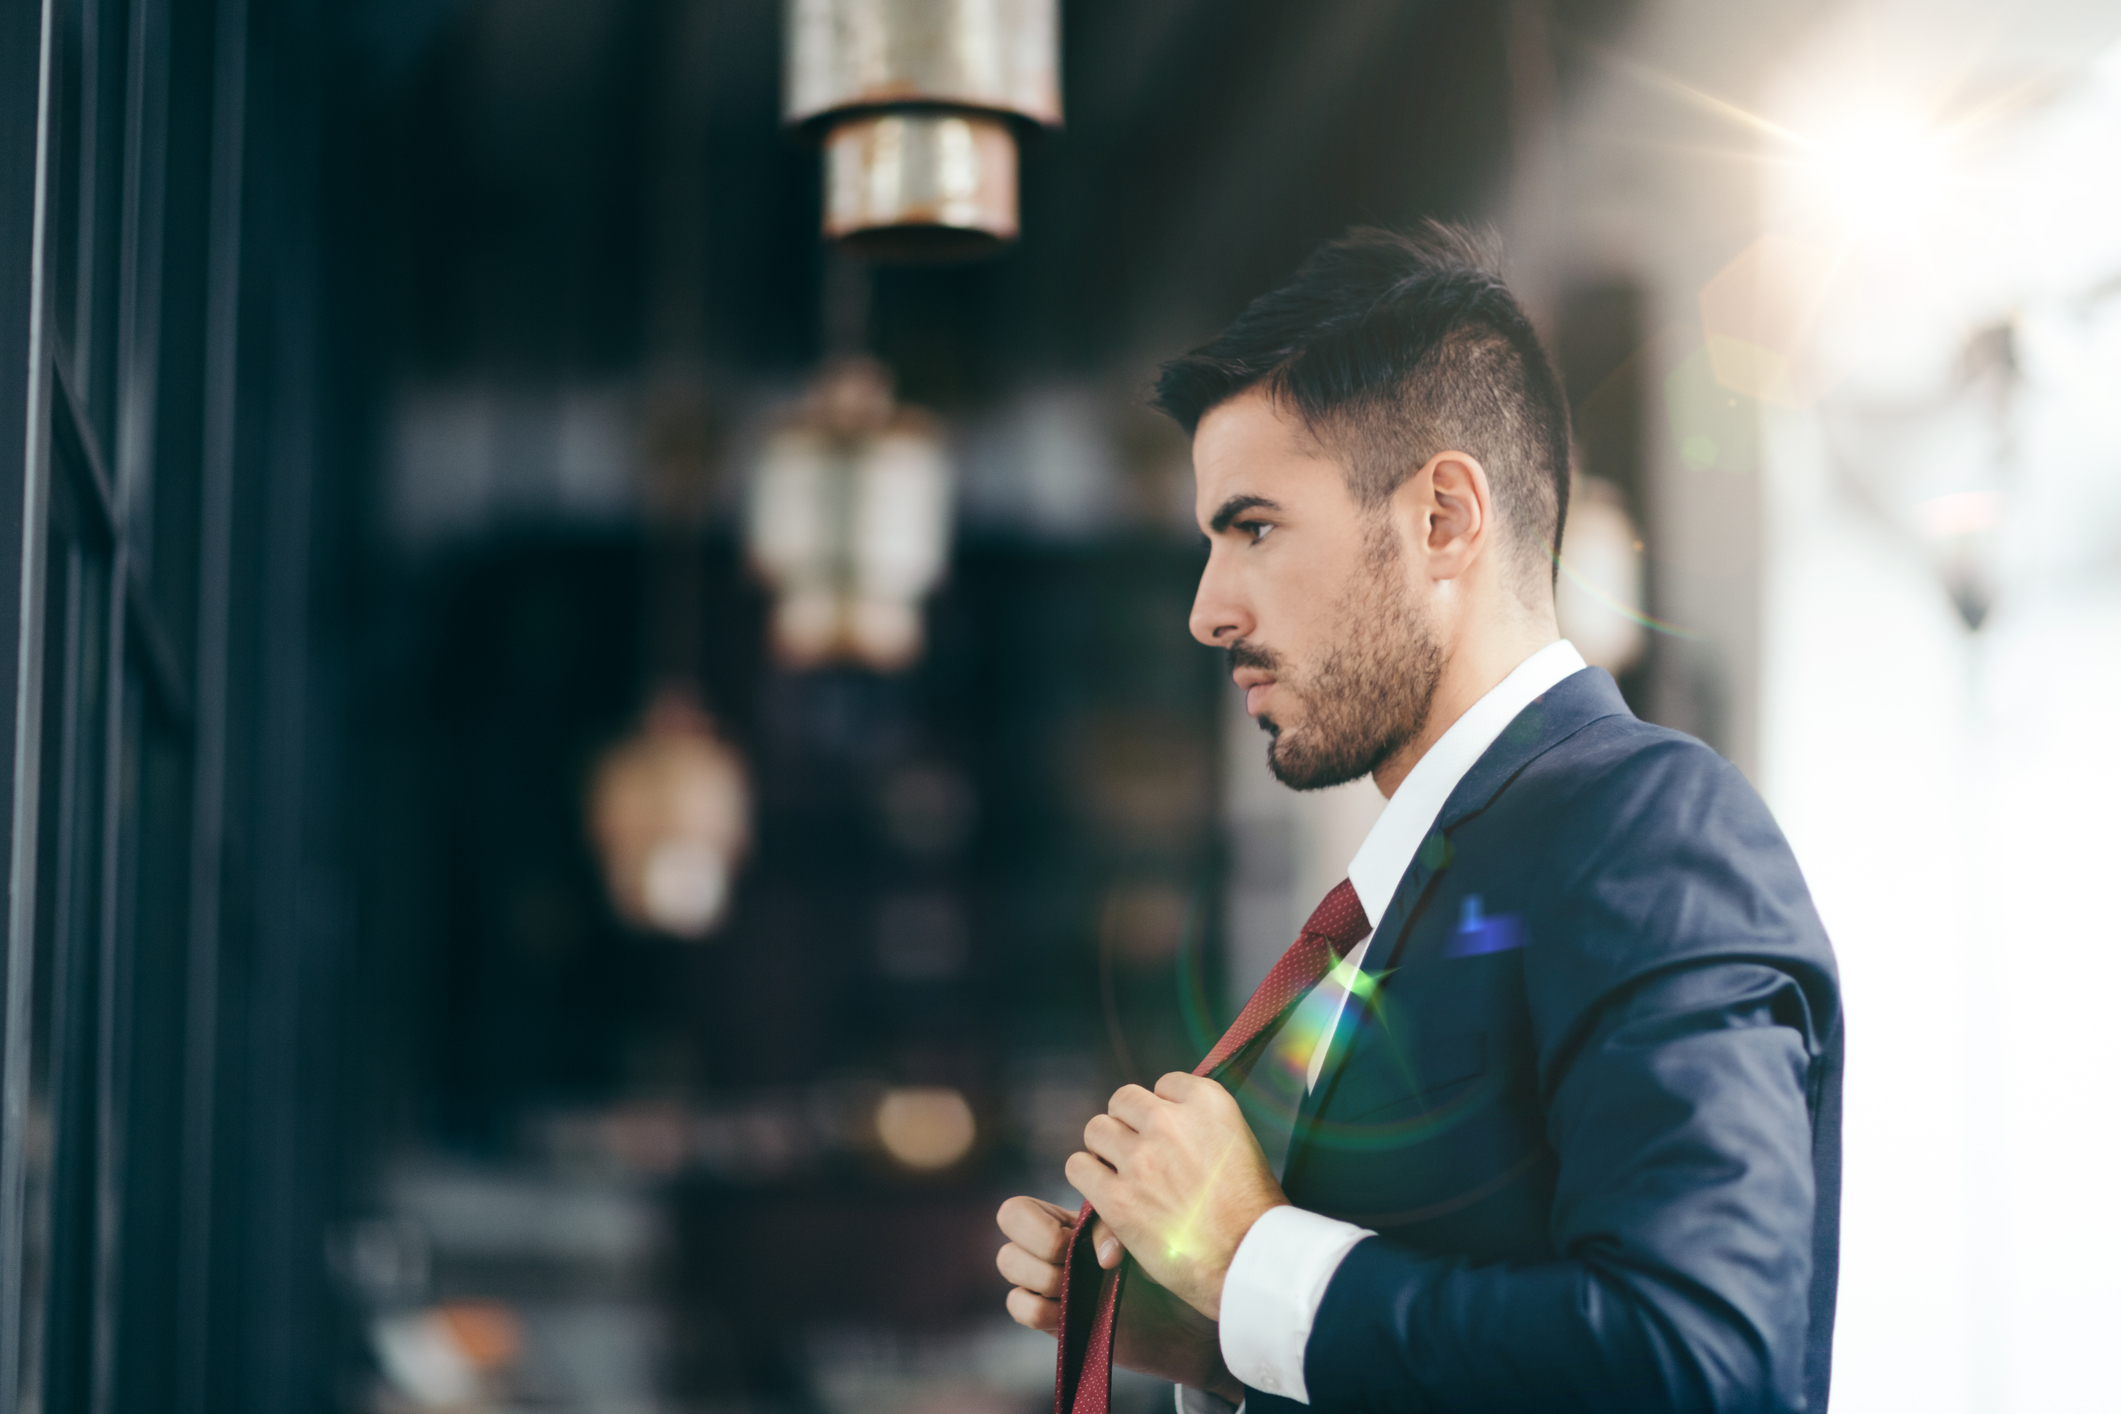 #Interview Fashion: What to wear to impress at a job interview